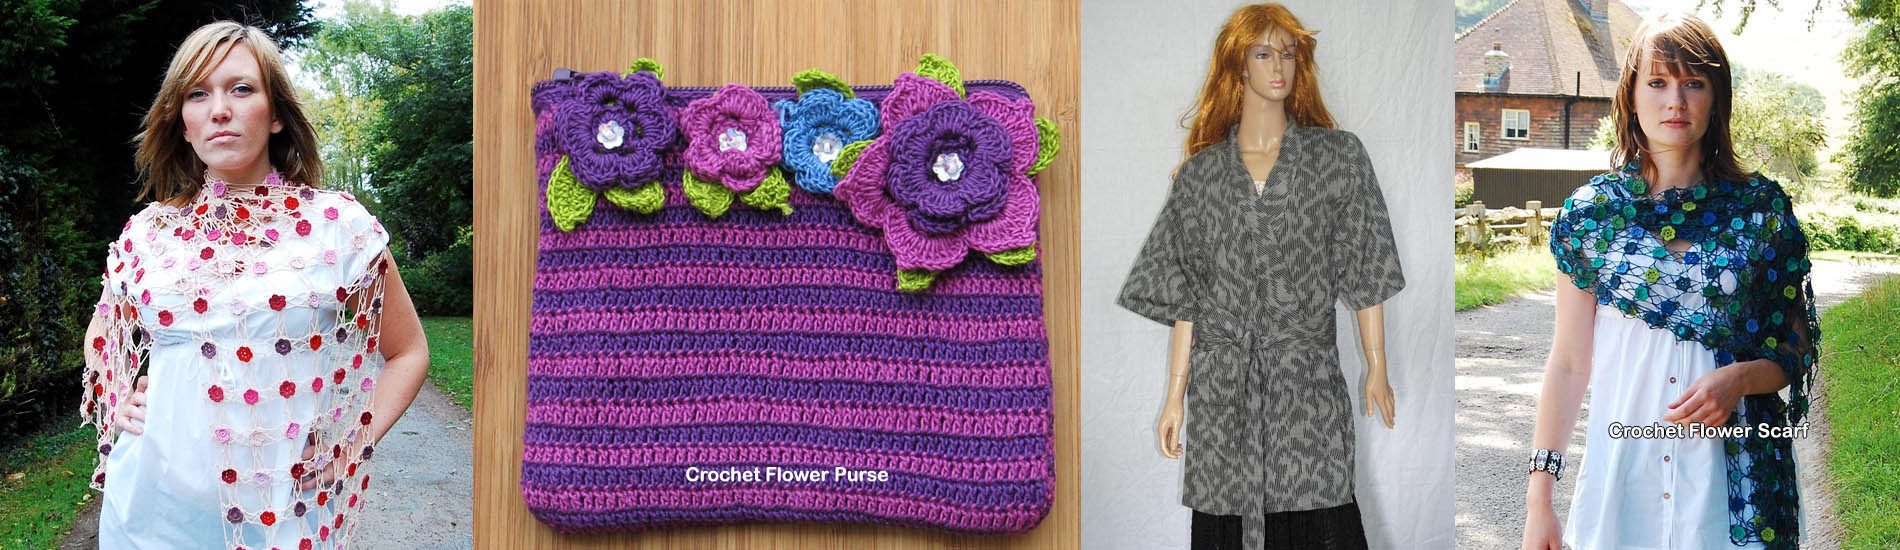 Crochet Flower Purses